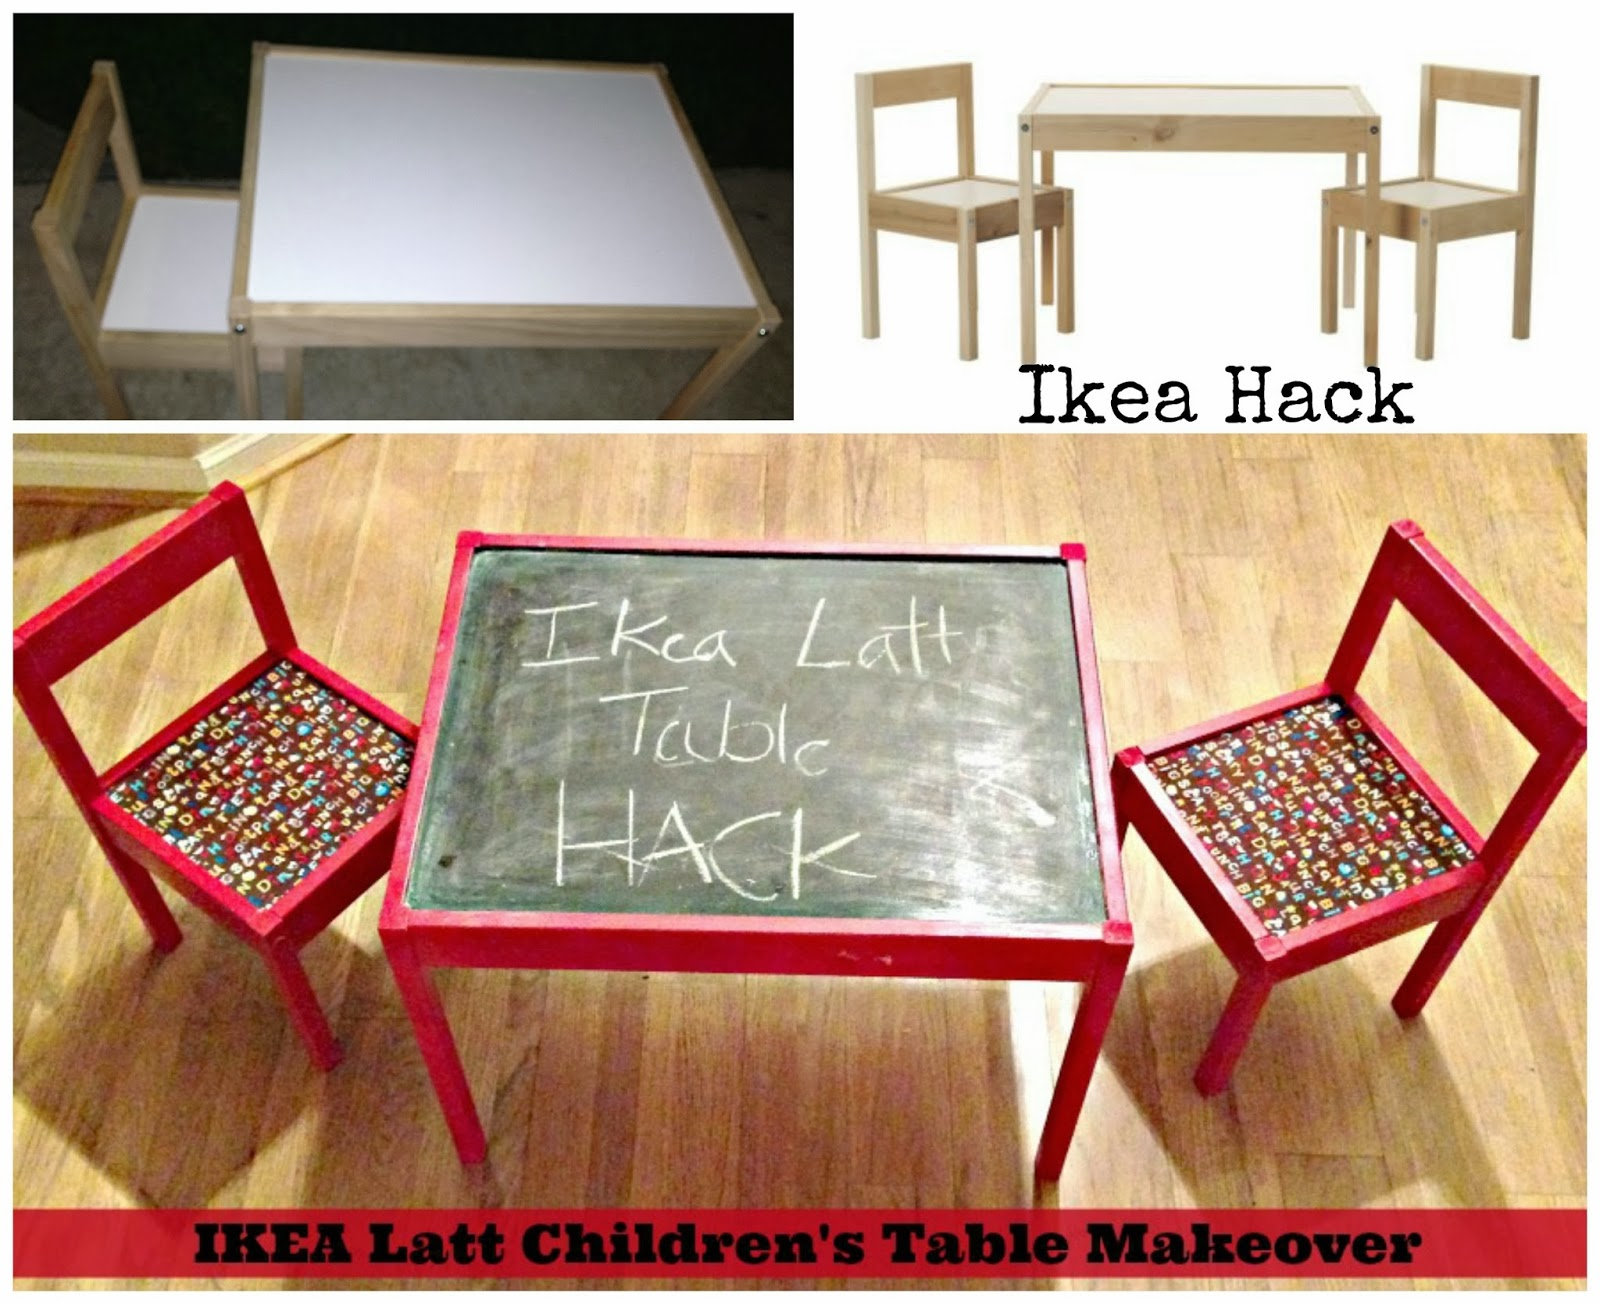 Ikea kids table and chairs - Ikea Latt Children S Table Makeover